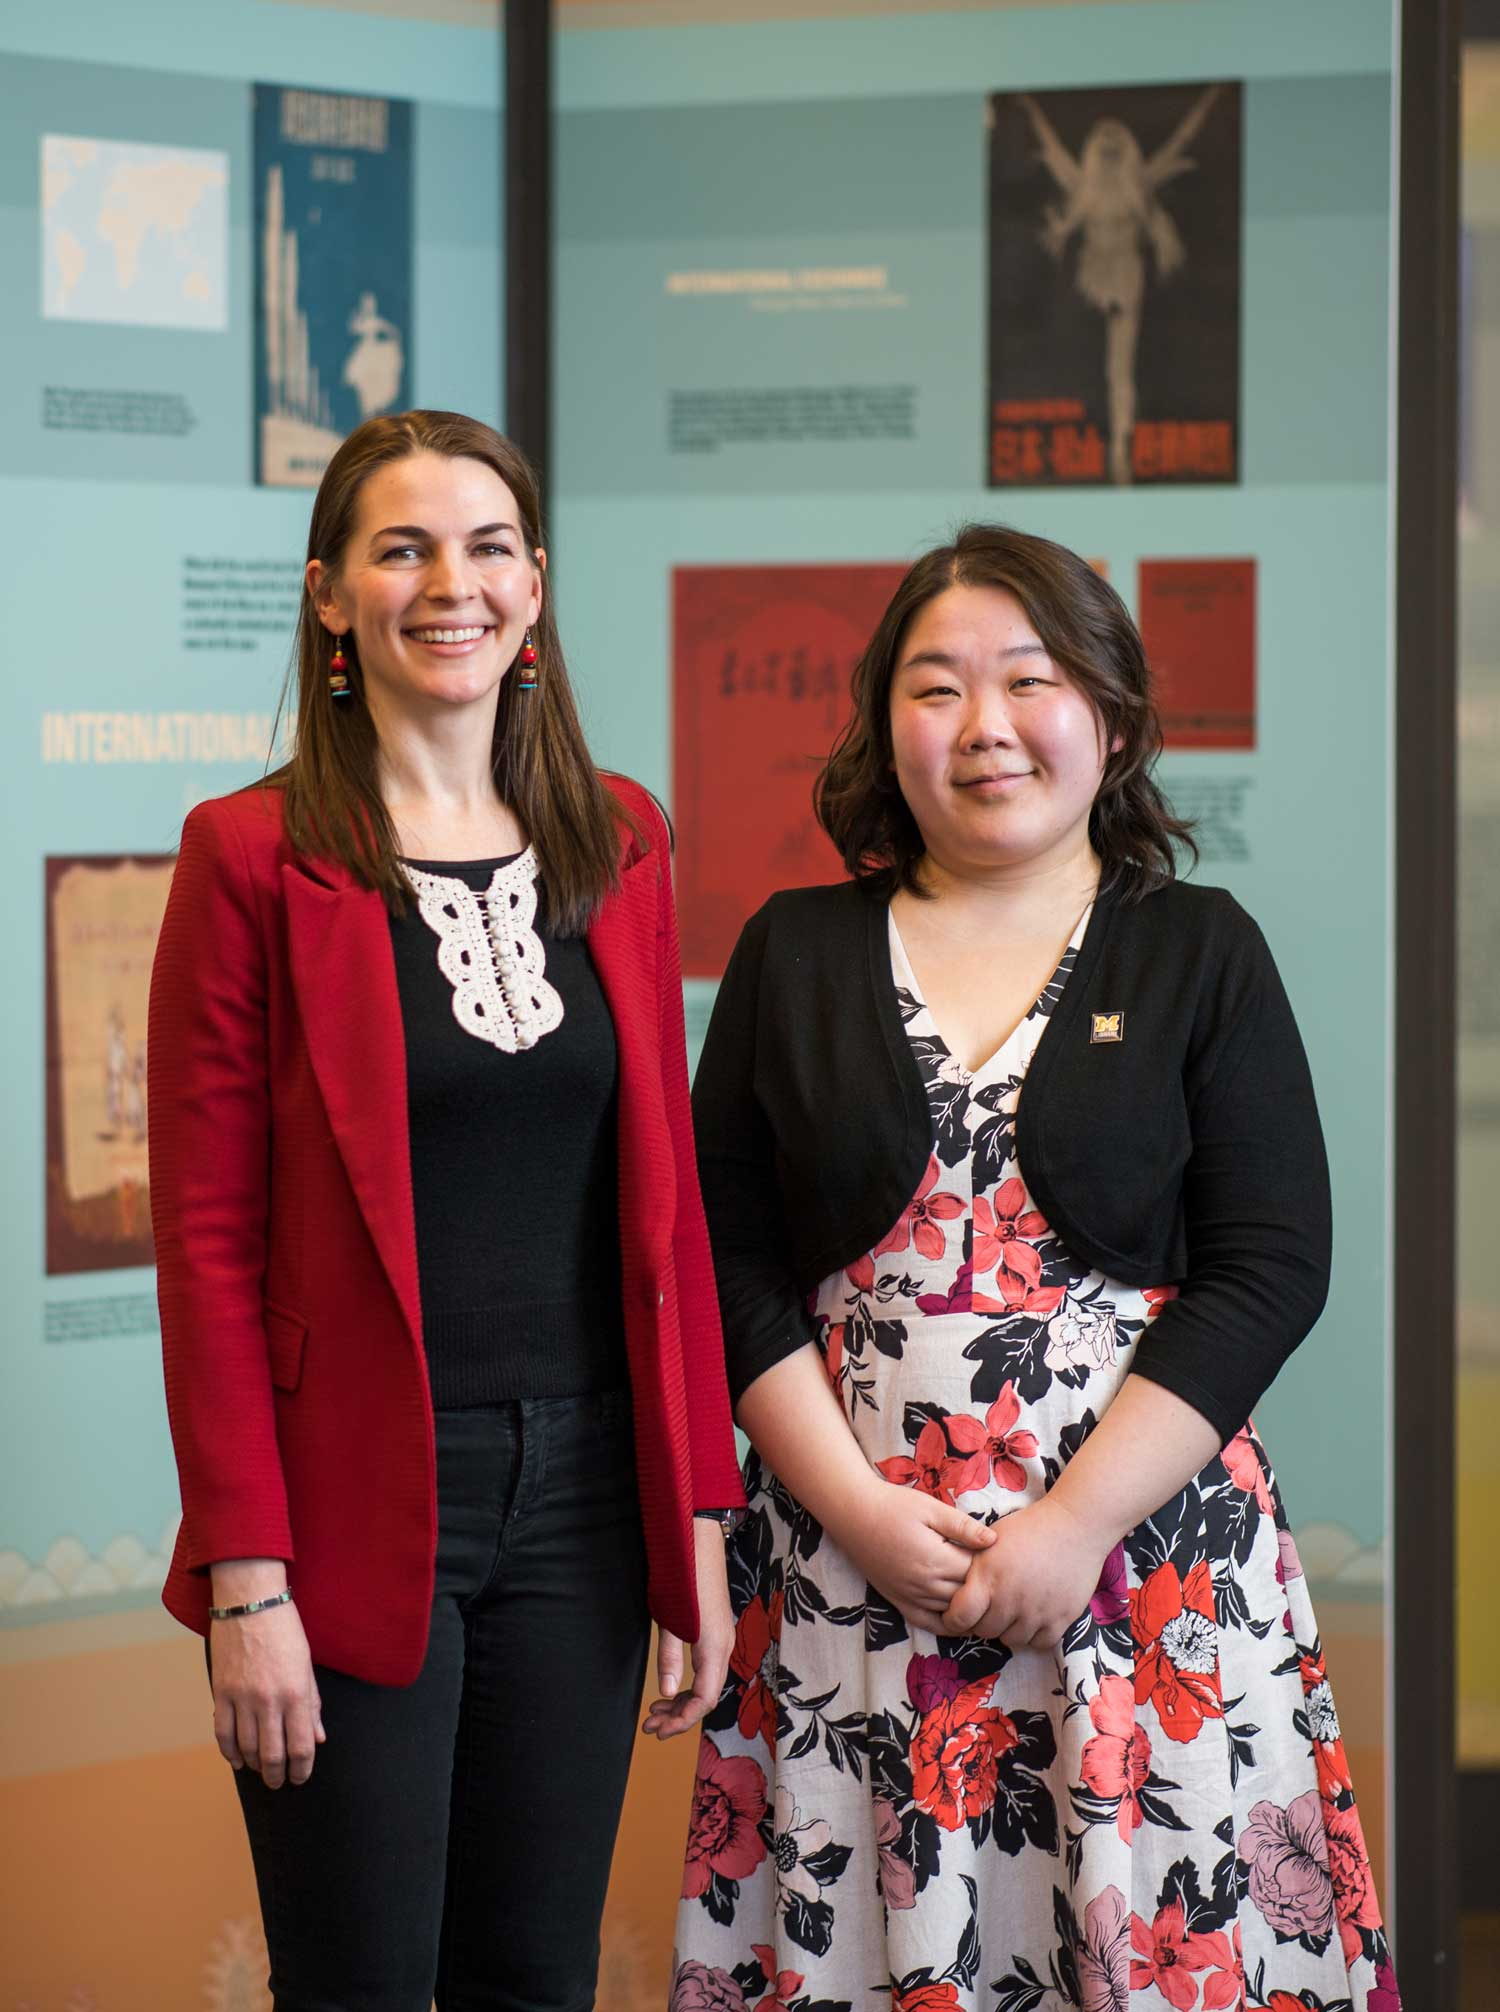 Dr. Emily Wilcox and Dr. Liangyu Fu